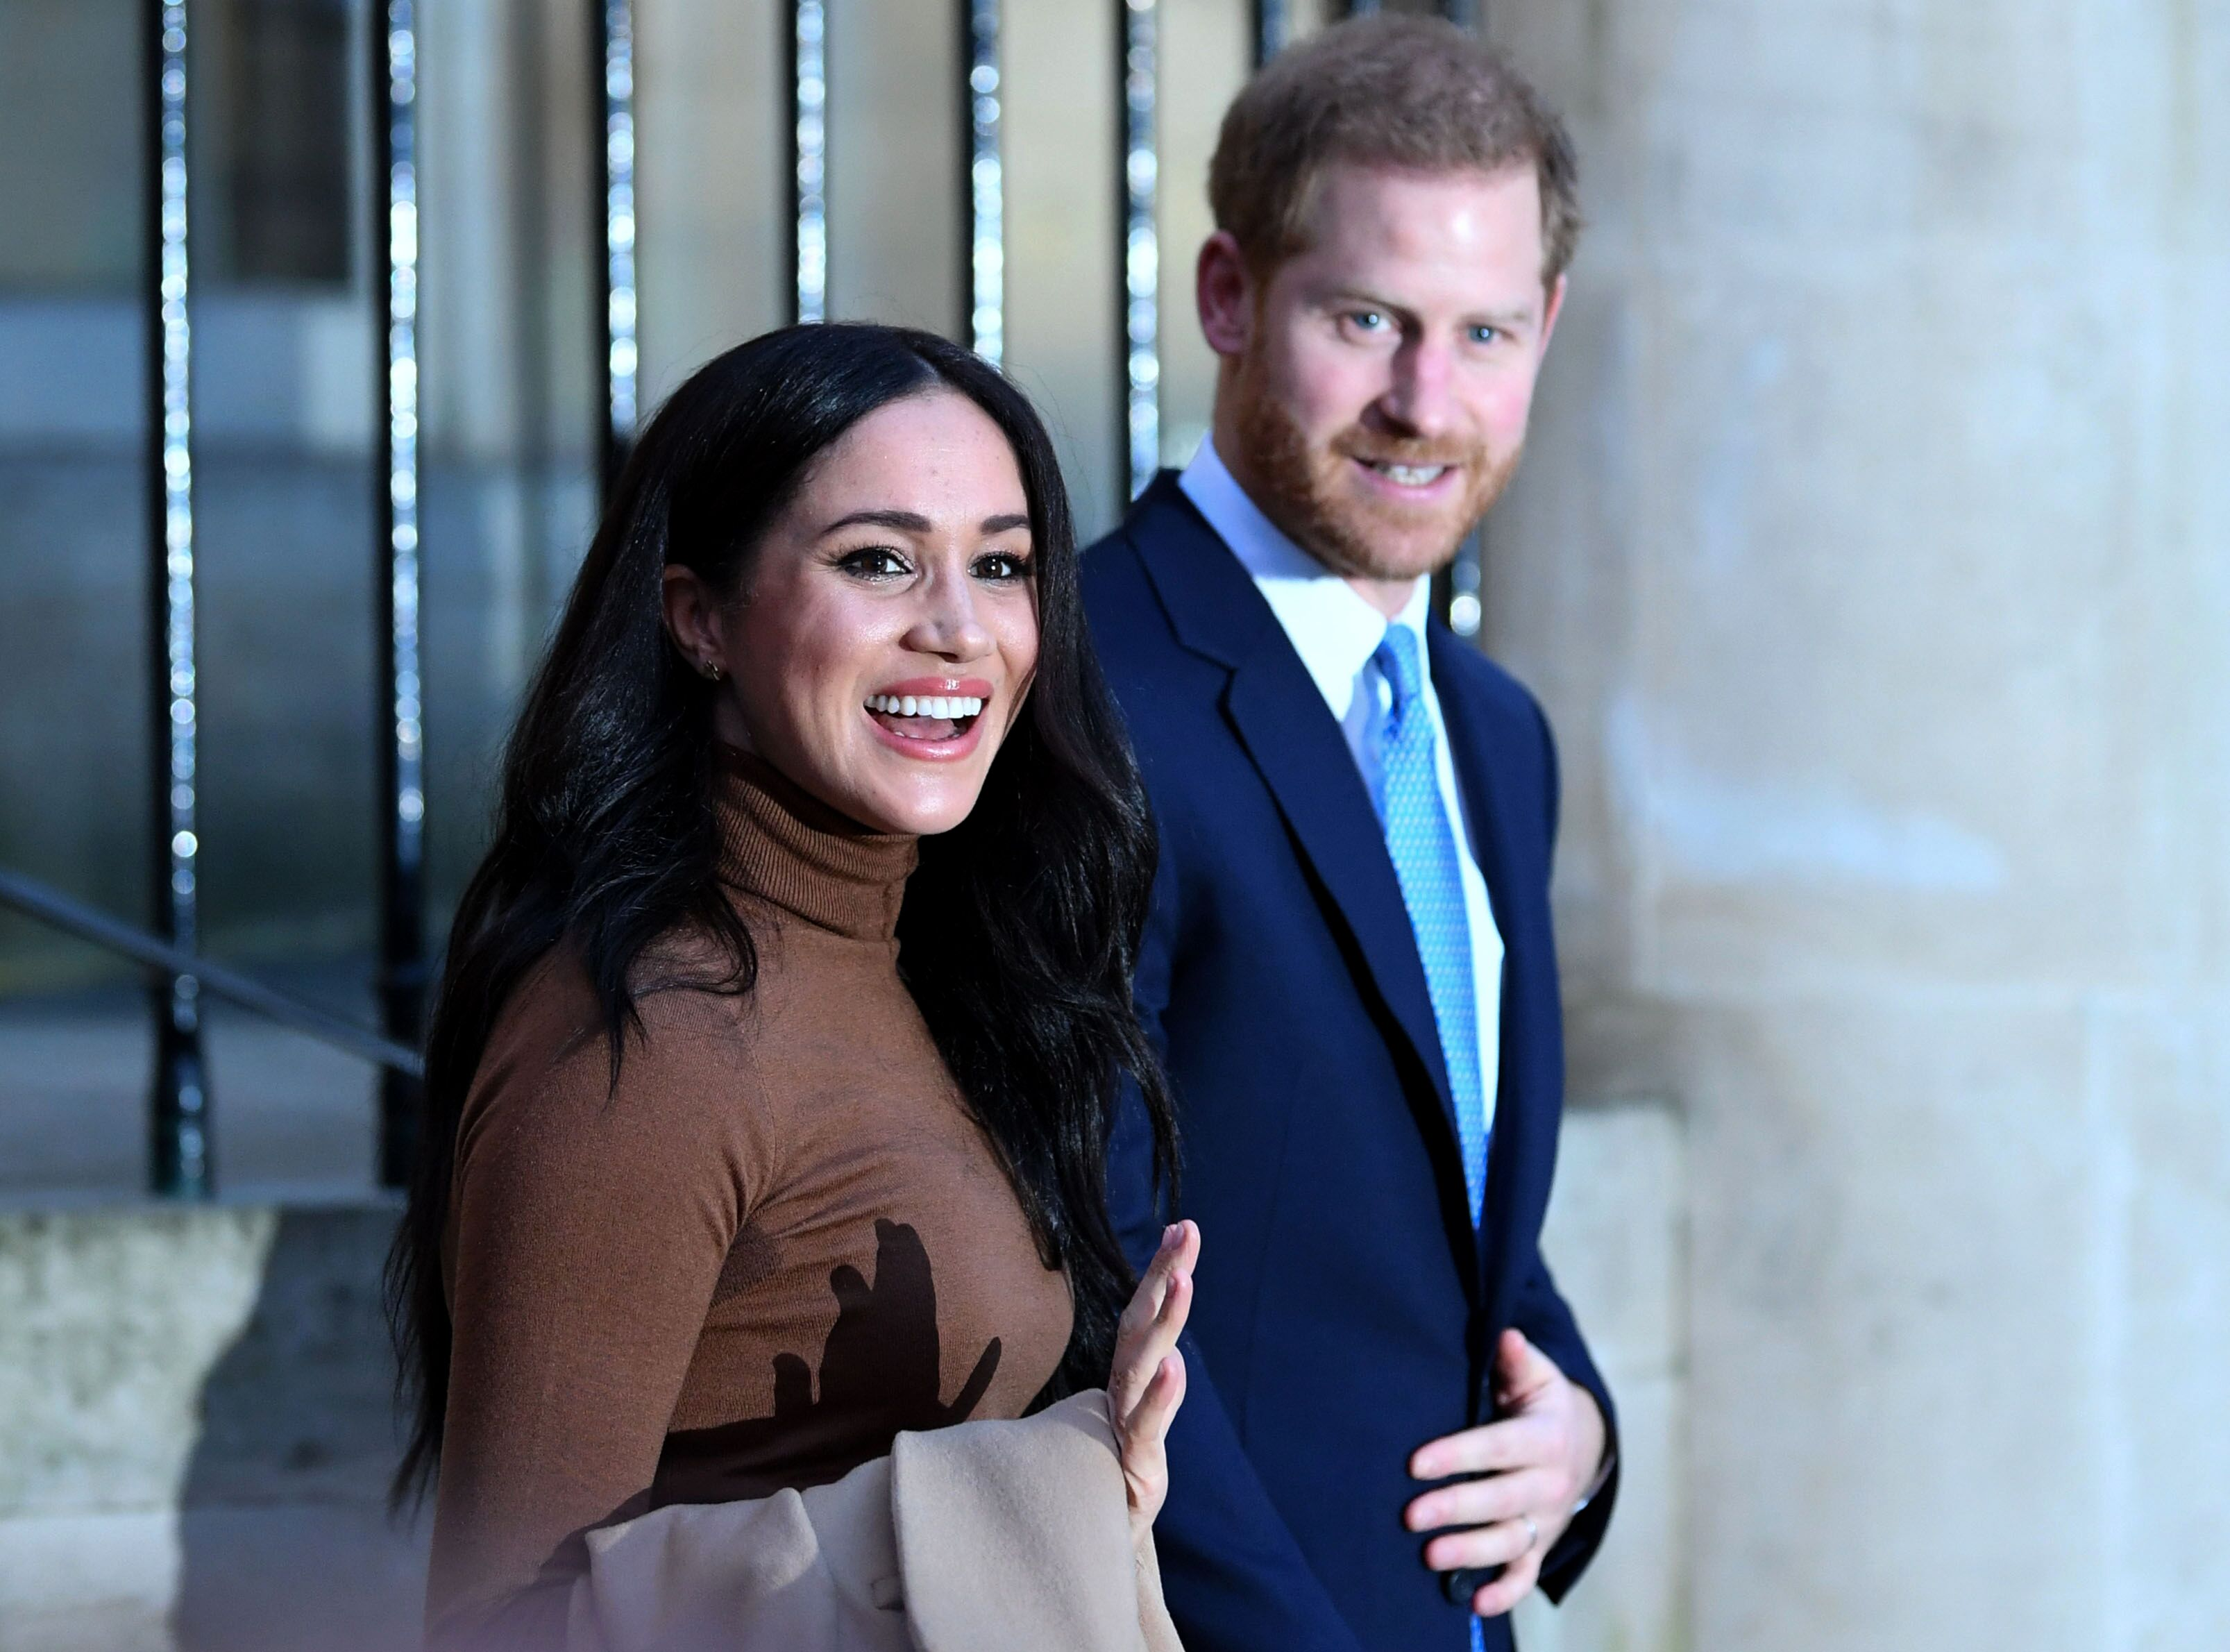 Prince Harry and Meghan react after their visit to Canada House in thanks for the warm Canadian hospitality and support they received during their recent stay in Canada, on January 7, 2020 in London, England | Photo: Getty Images